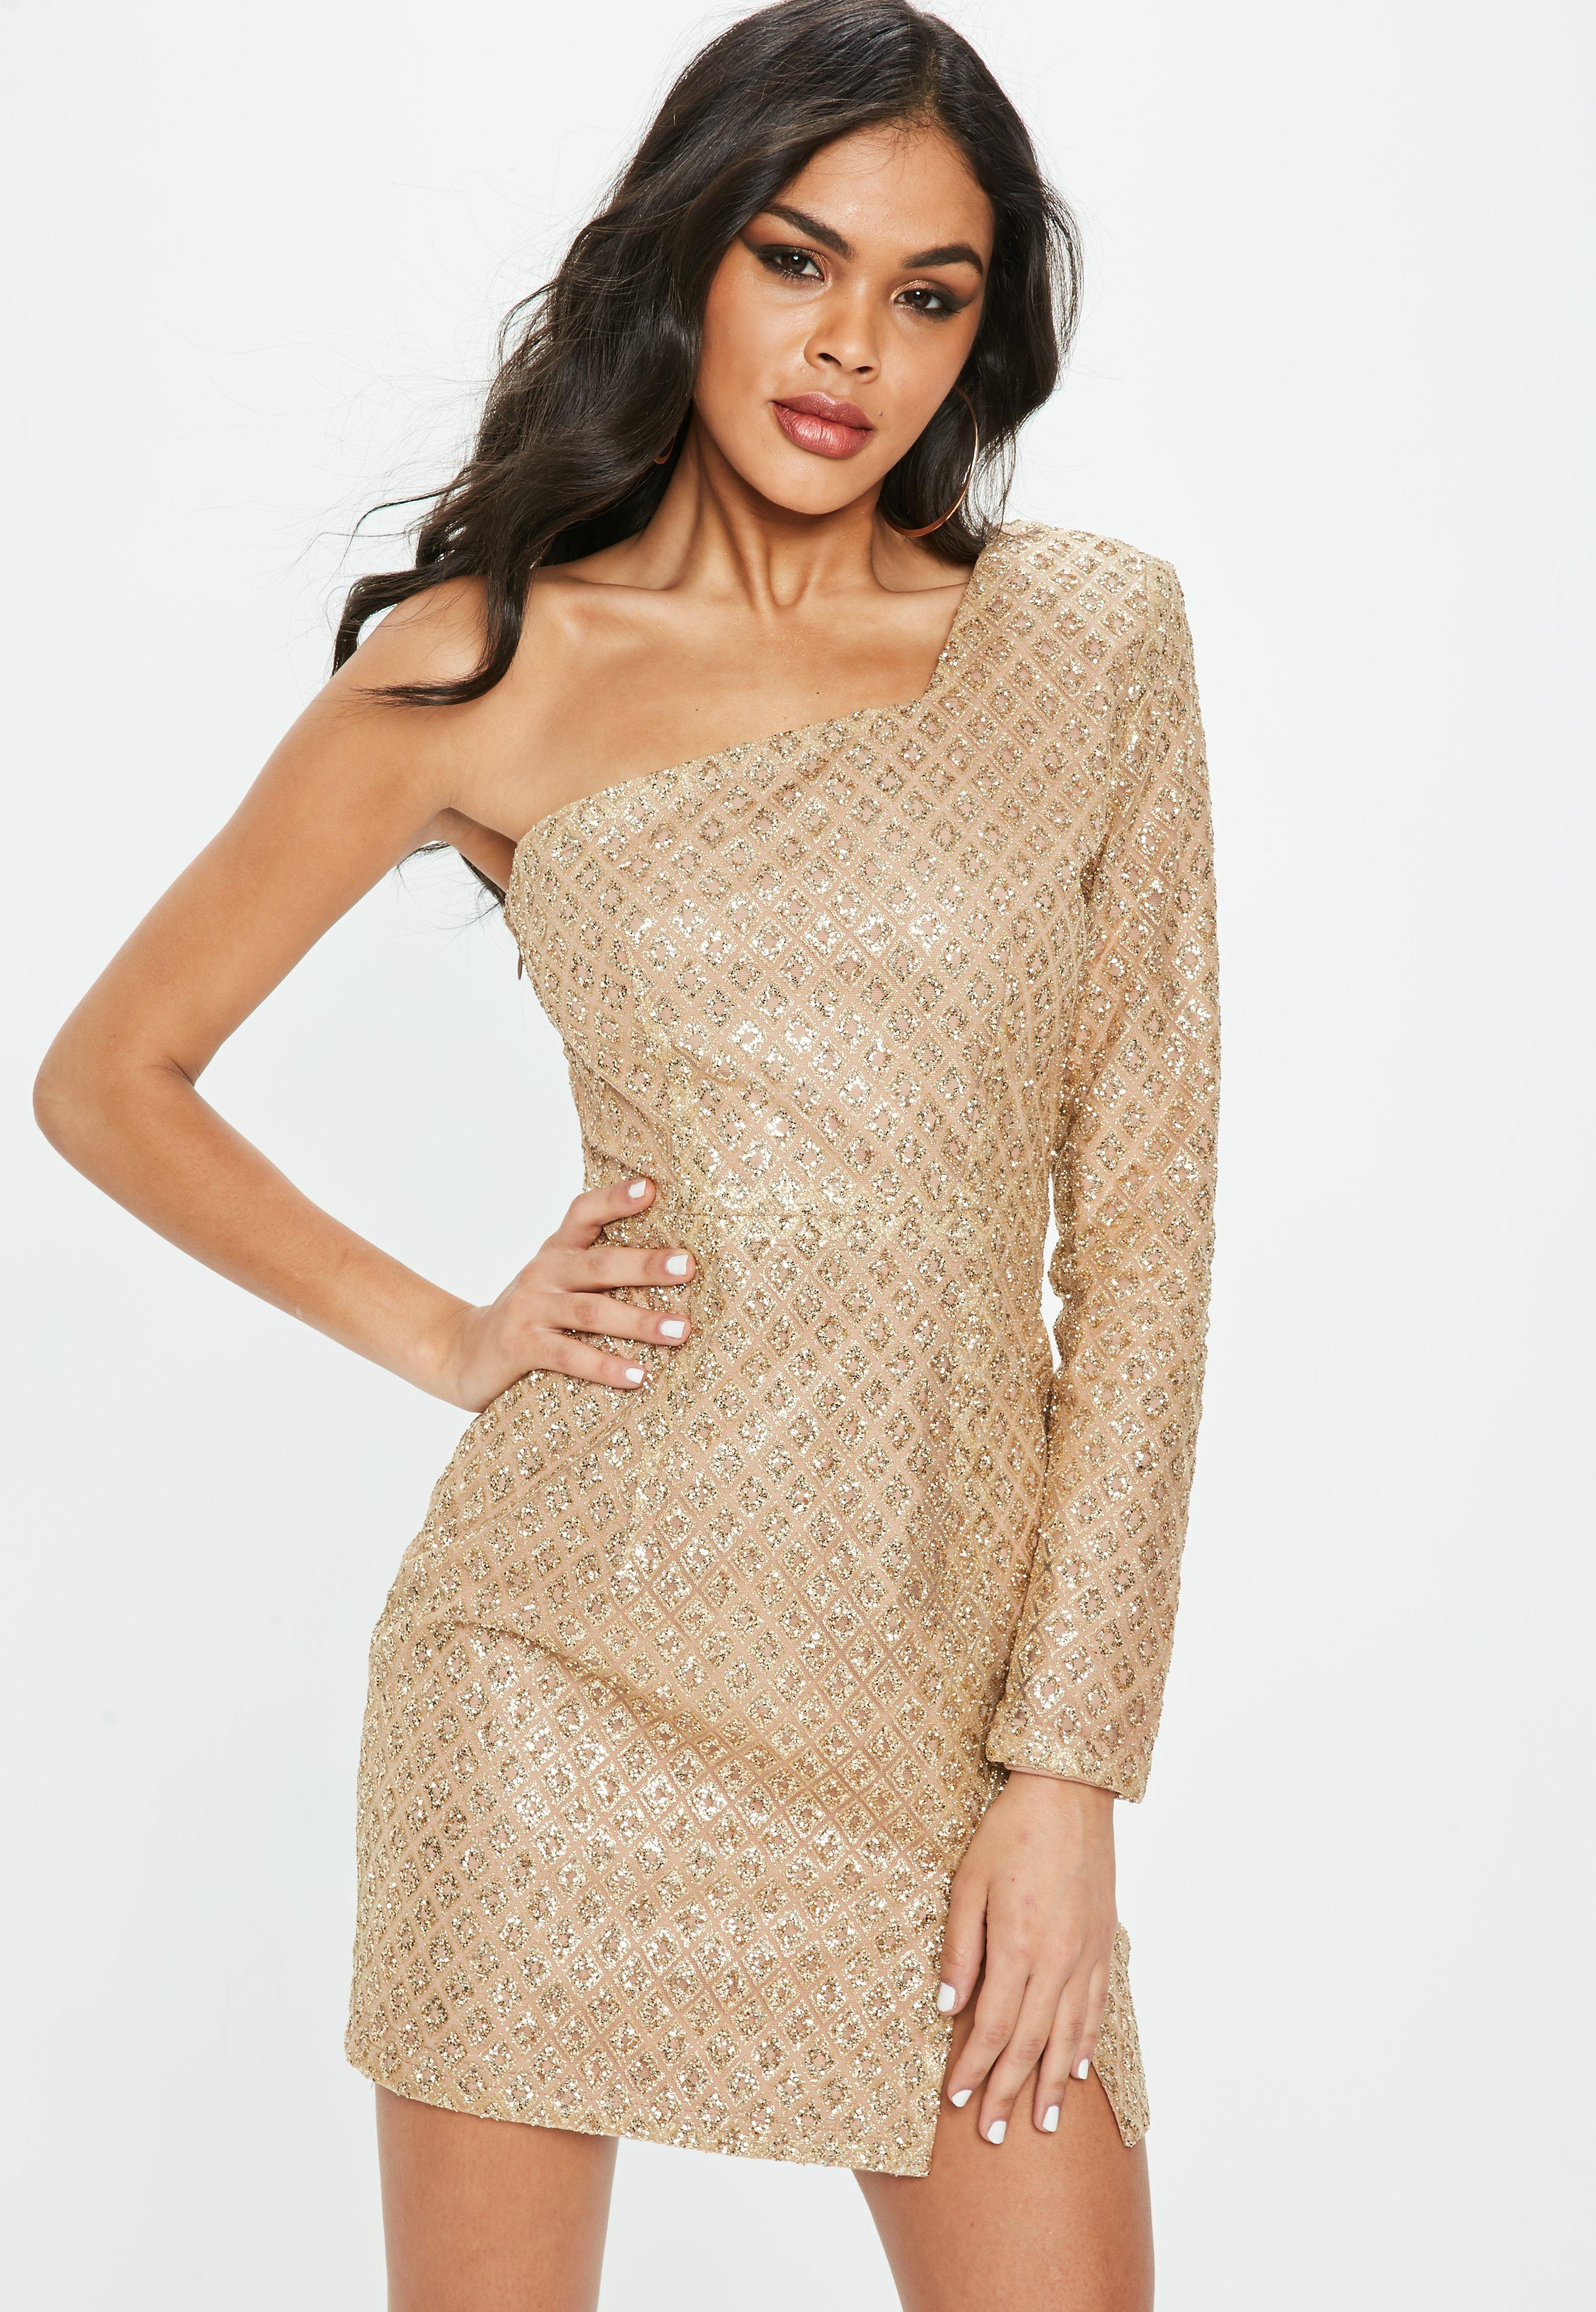 Sequin Dresses - Sparkly Dresses Online | Missguided